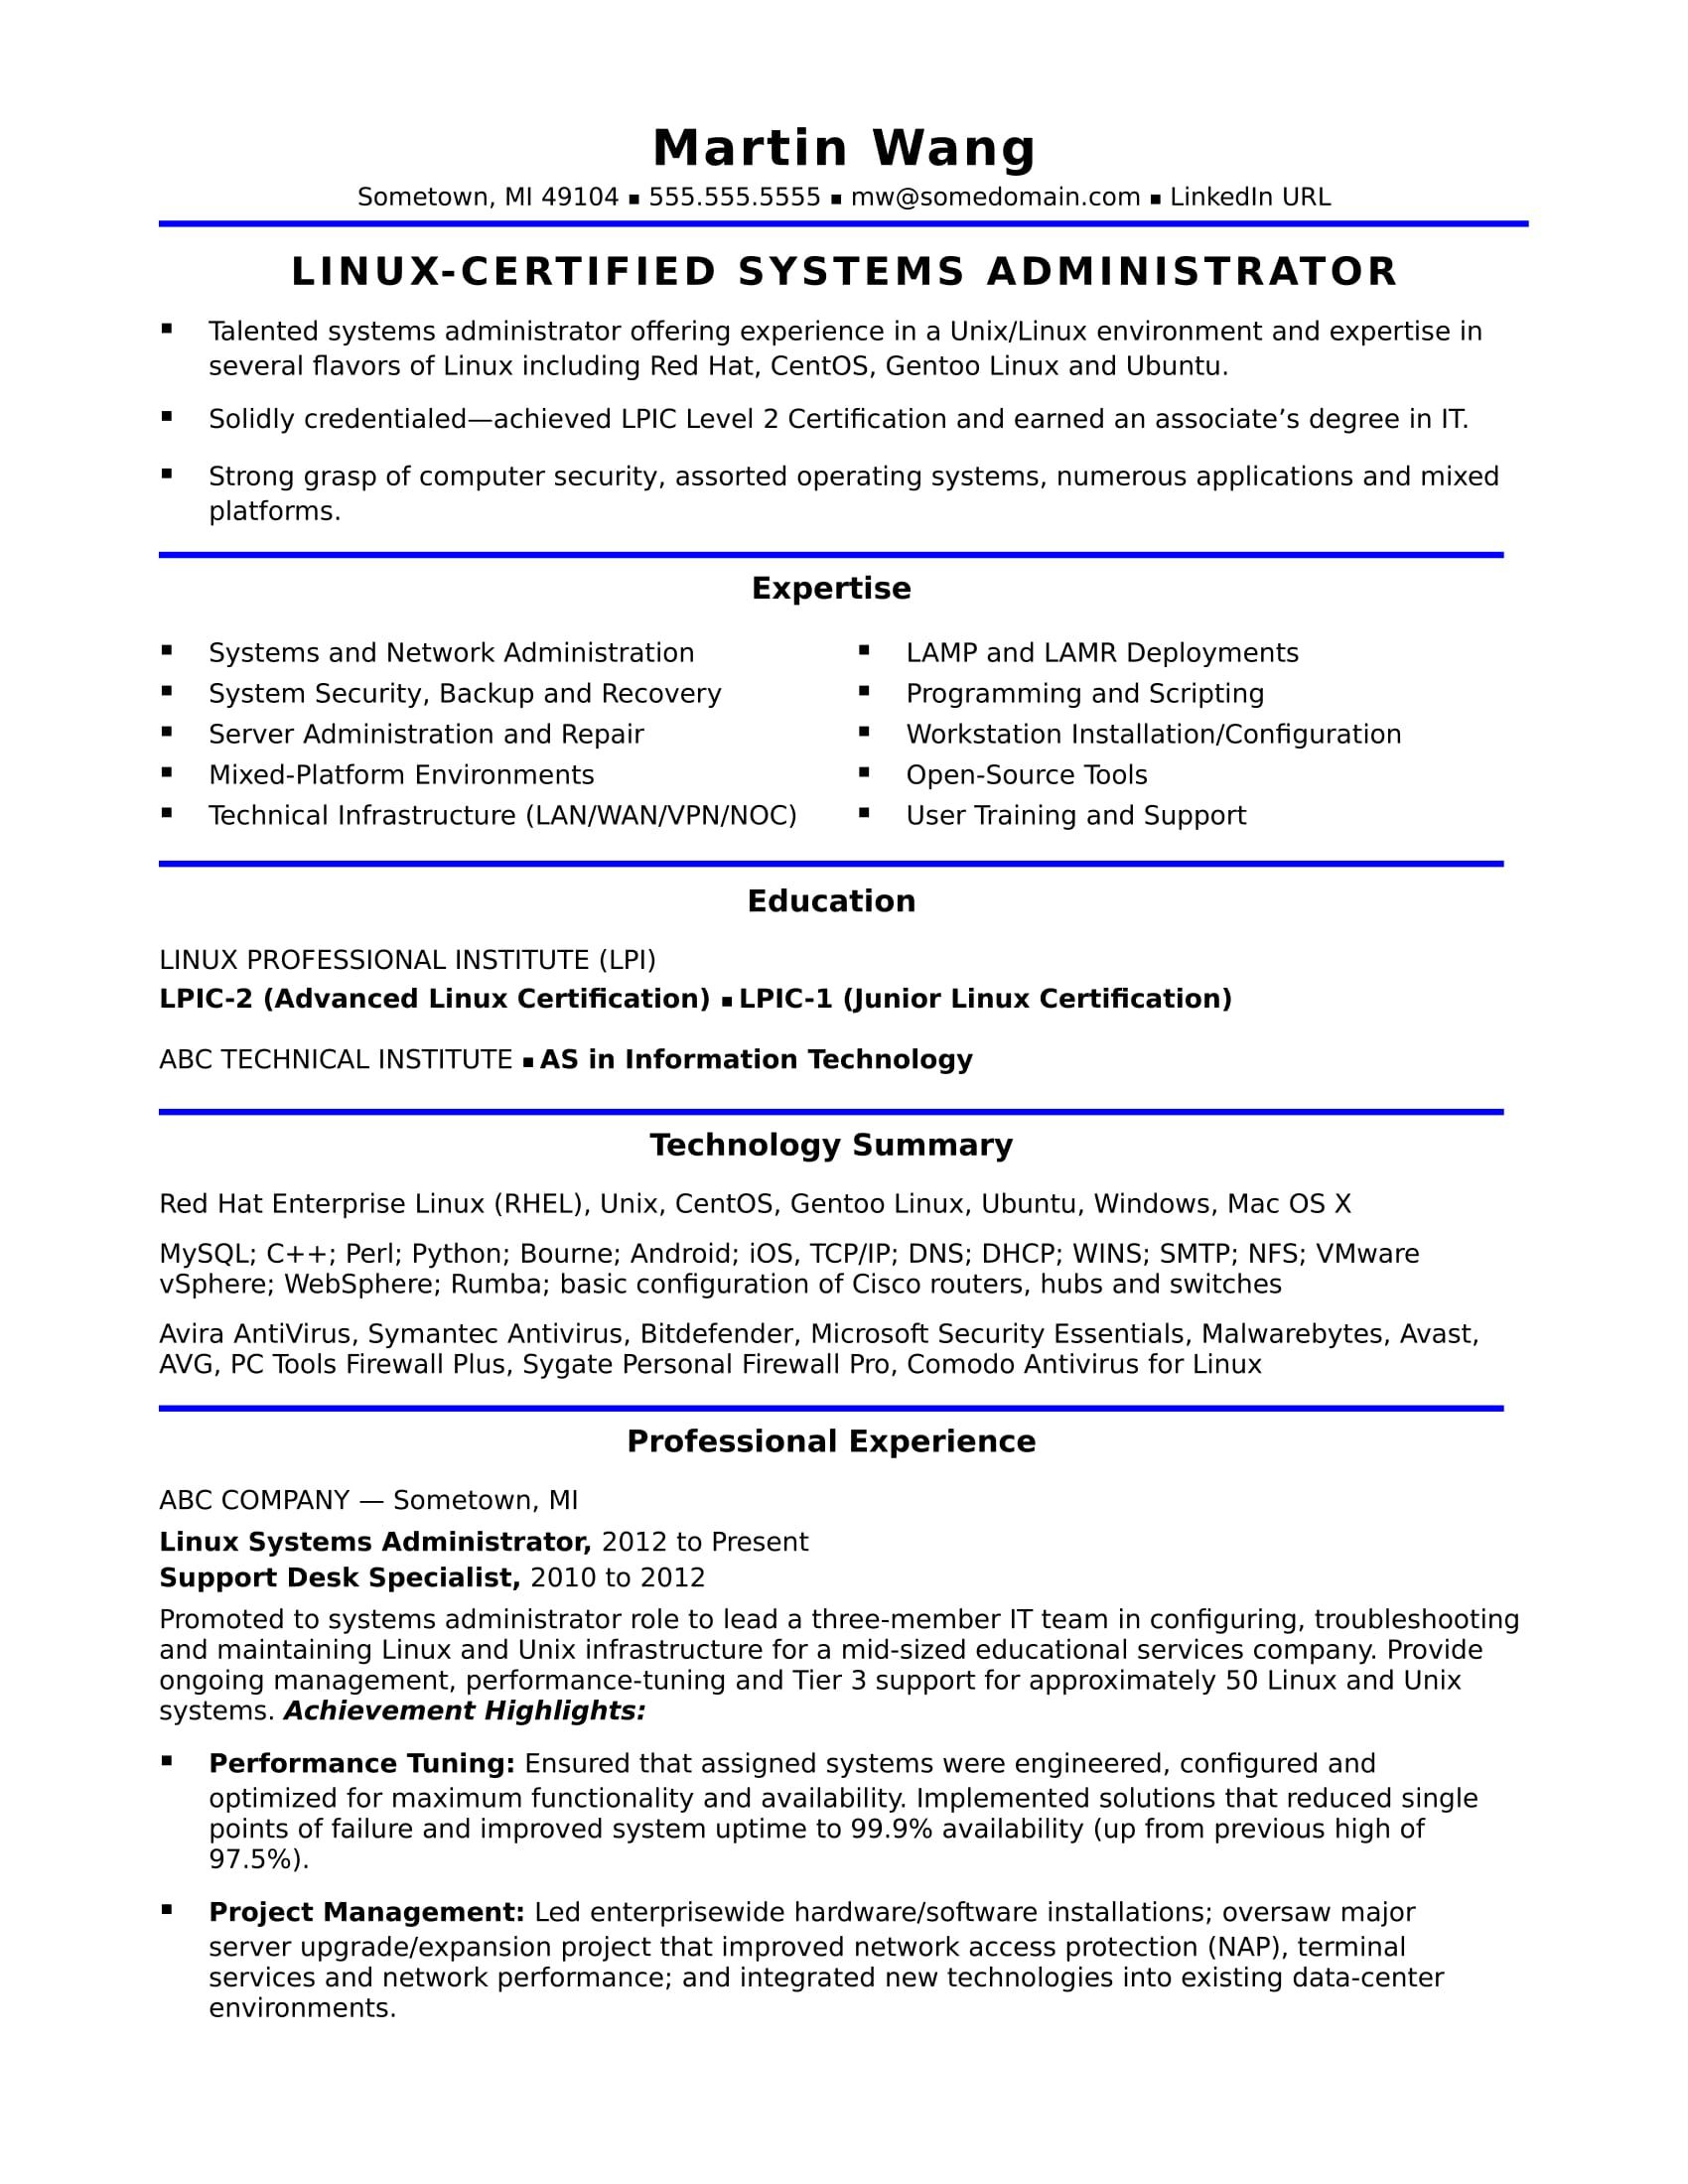 sample resume for midlevel systems administrator monster availability novo workday Resume Resume Availability Sample